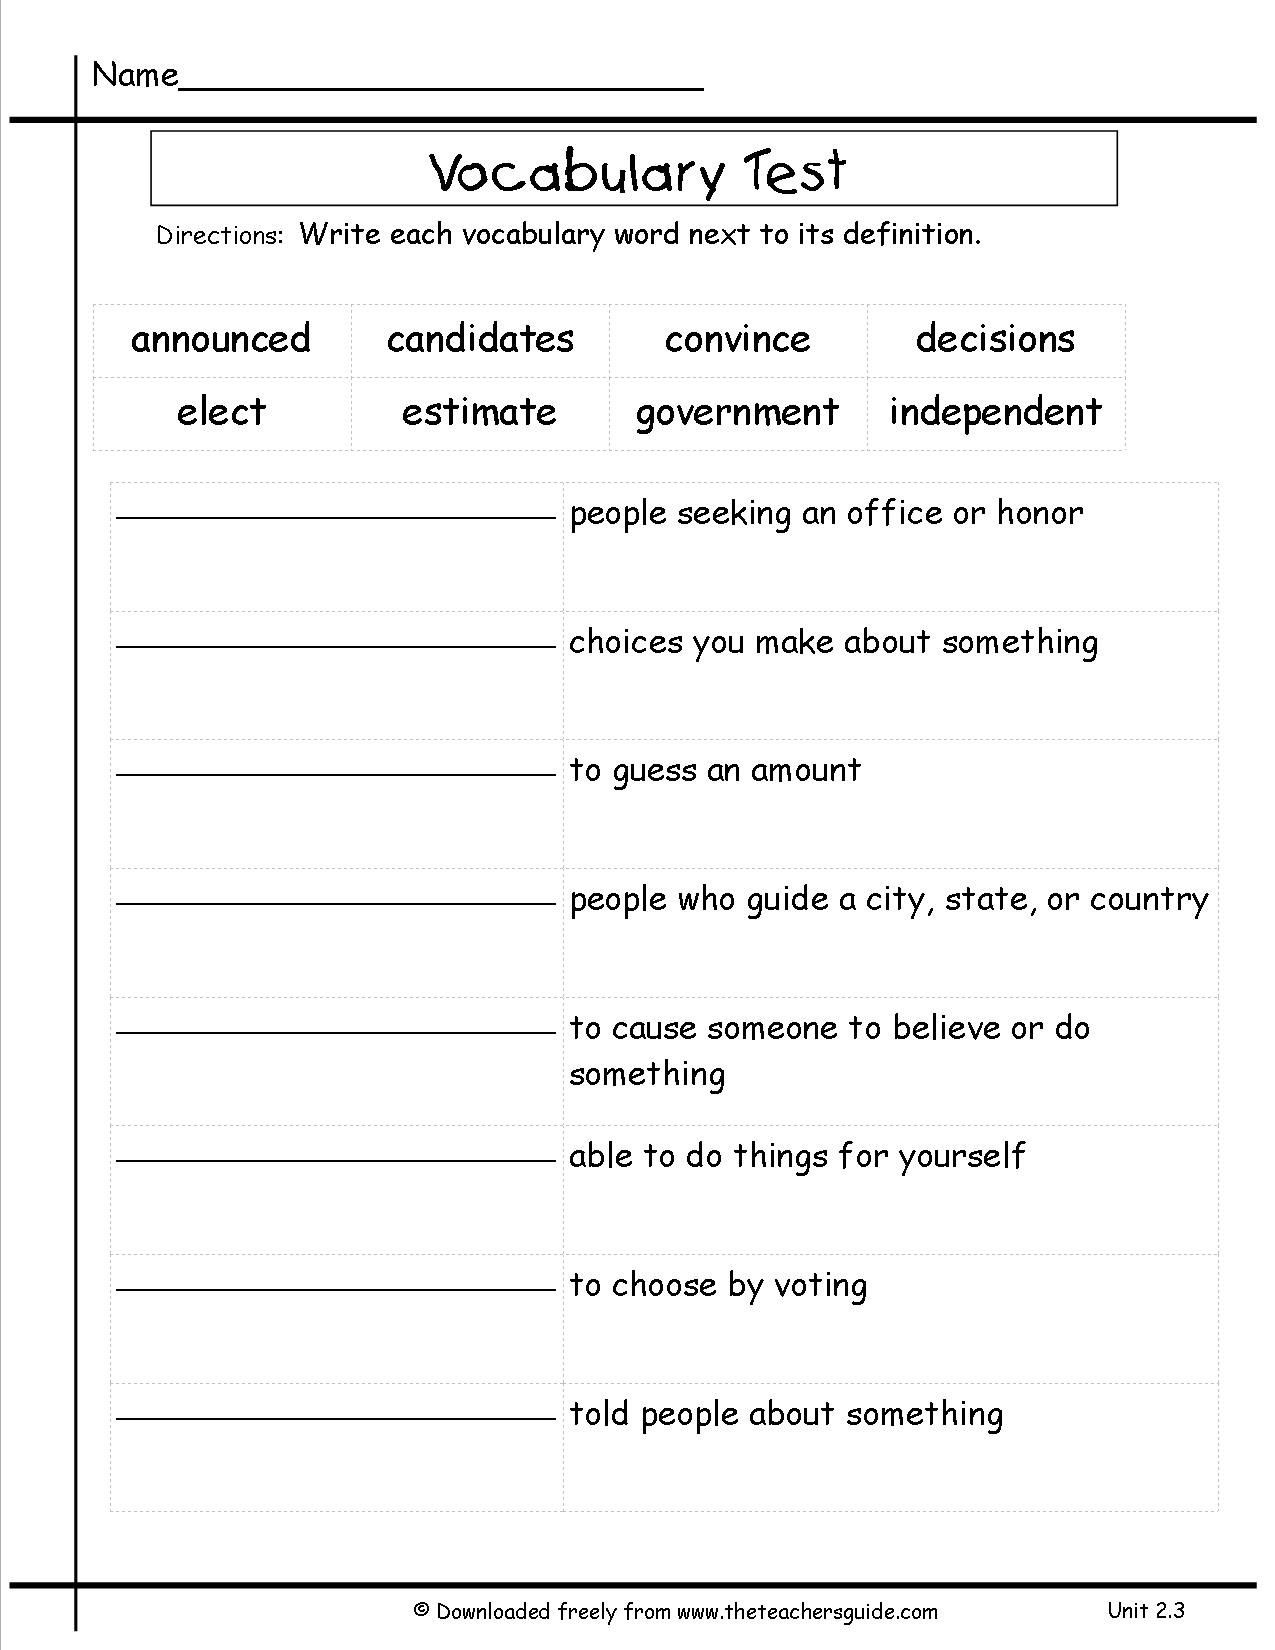 Subject Worksheets 3rd Grade 3rd Grade Vocabulary Worksheets for Free Preschool Worksheet